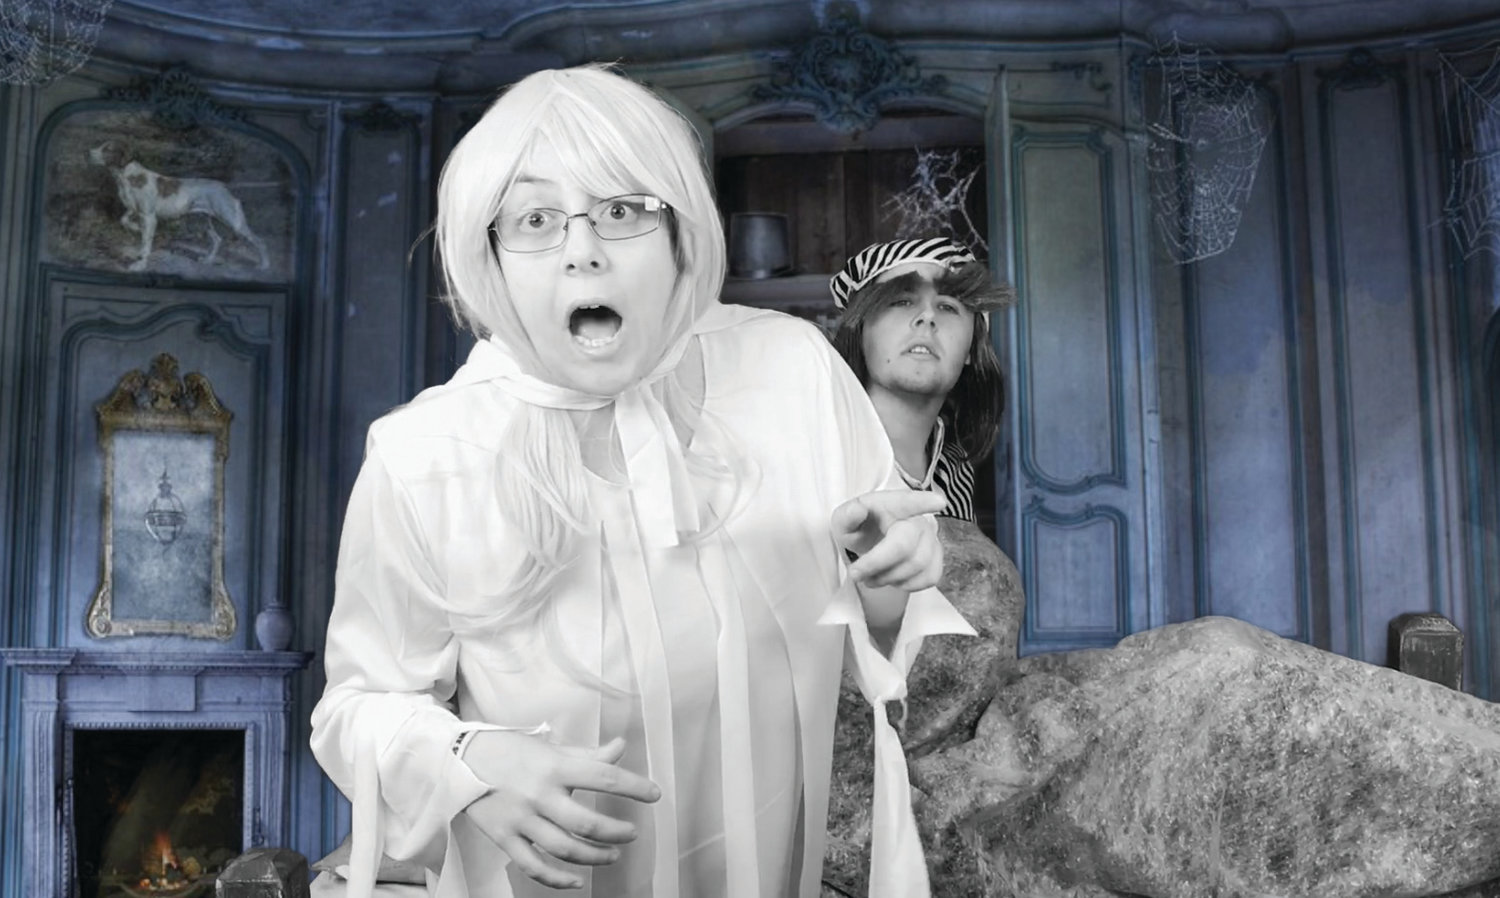 """A Christmas Carol"" was the first film put together by the special-education film club. With clever editing, a green screen and a costume, Arianna was transformed into the Ghost of Christmas Past."